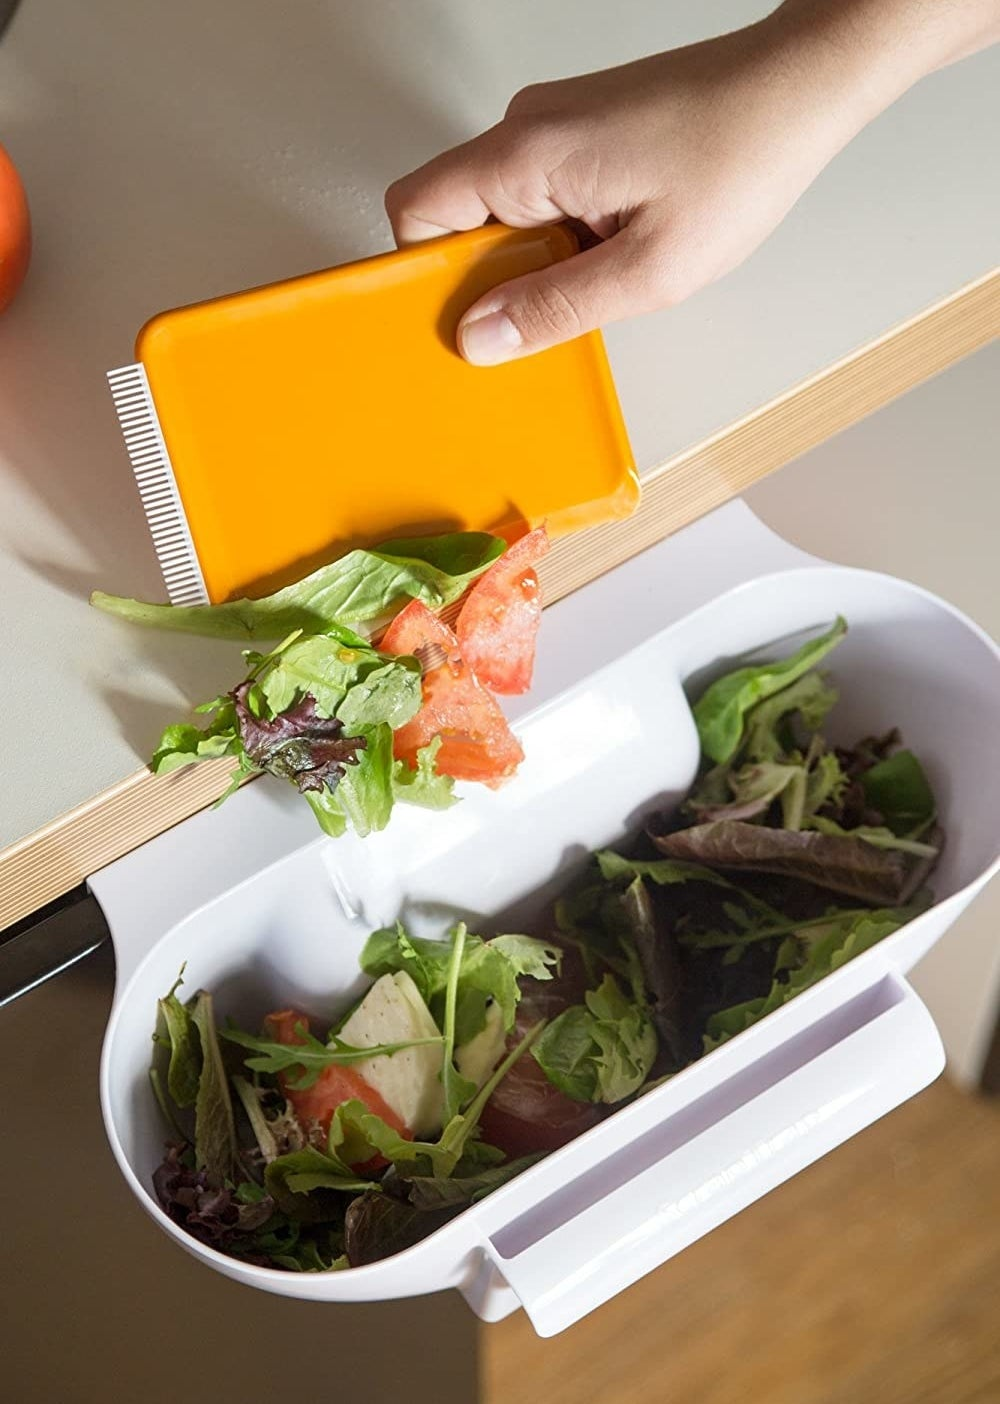 A person scoops kitchen scraps off the counter and into the cabinet-mounted trap